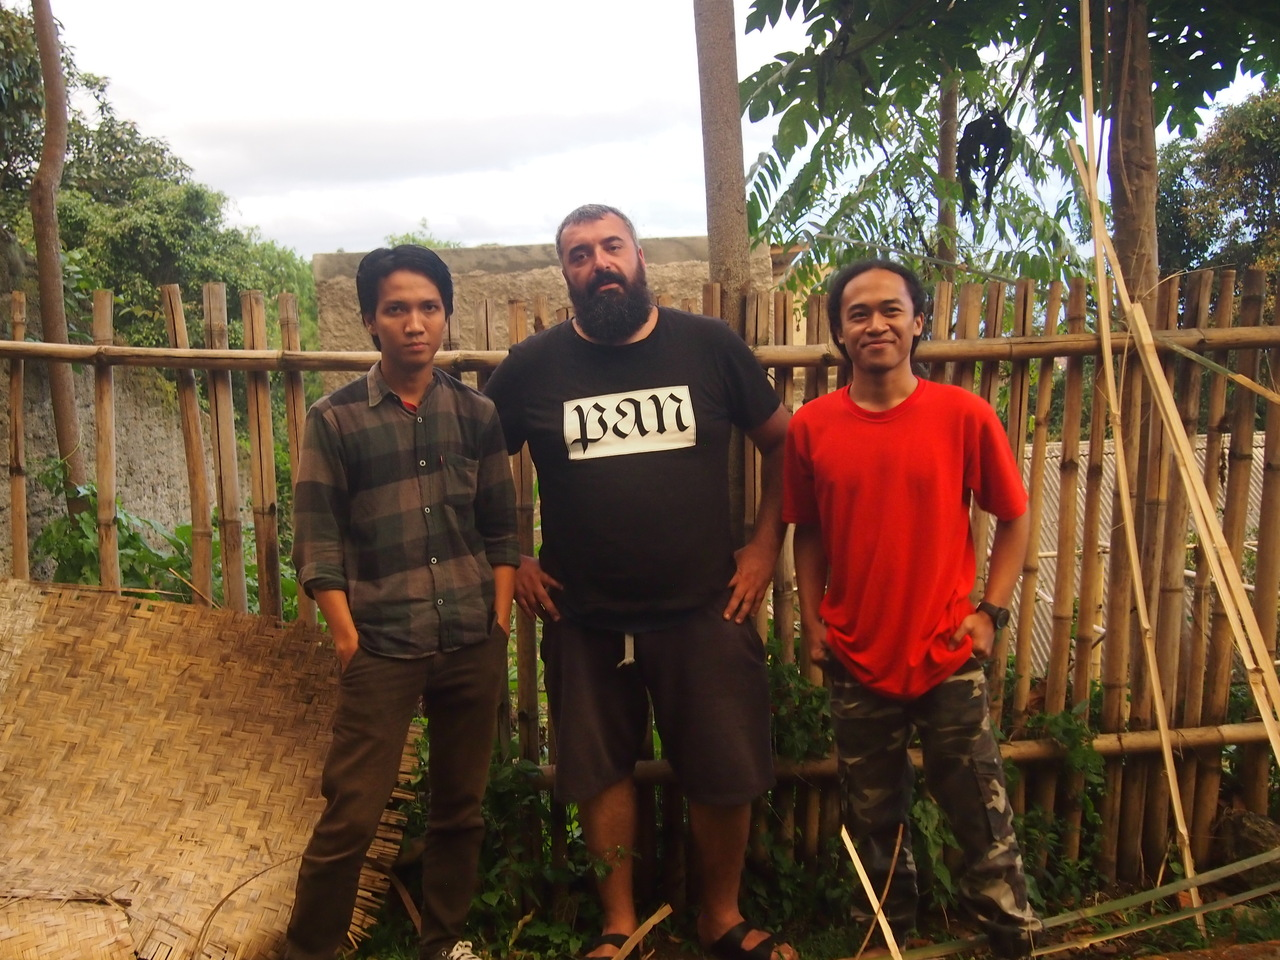 Morphine Records brings Indonesian music to Berghain and announces new album